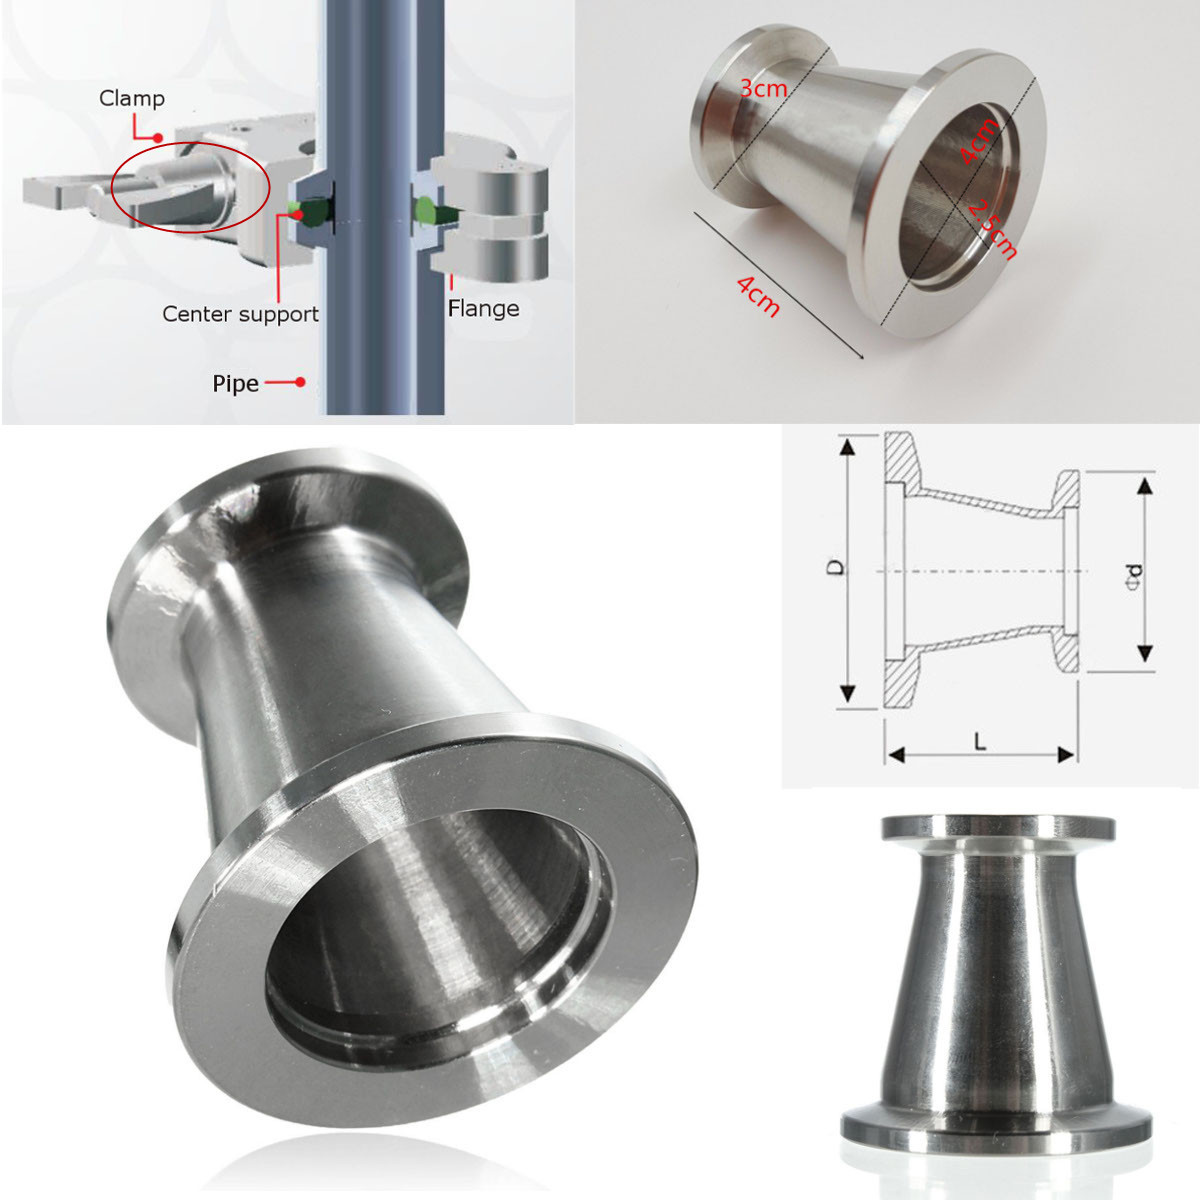 KF25 (NW25) To KF16 (NW16) Conical Reducer Union SS304 Vacuum Adapter Stainless Steel Cap Reducer